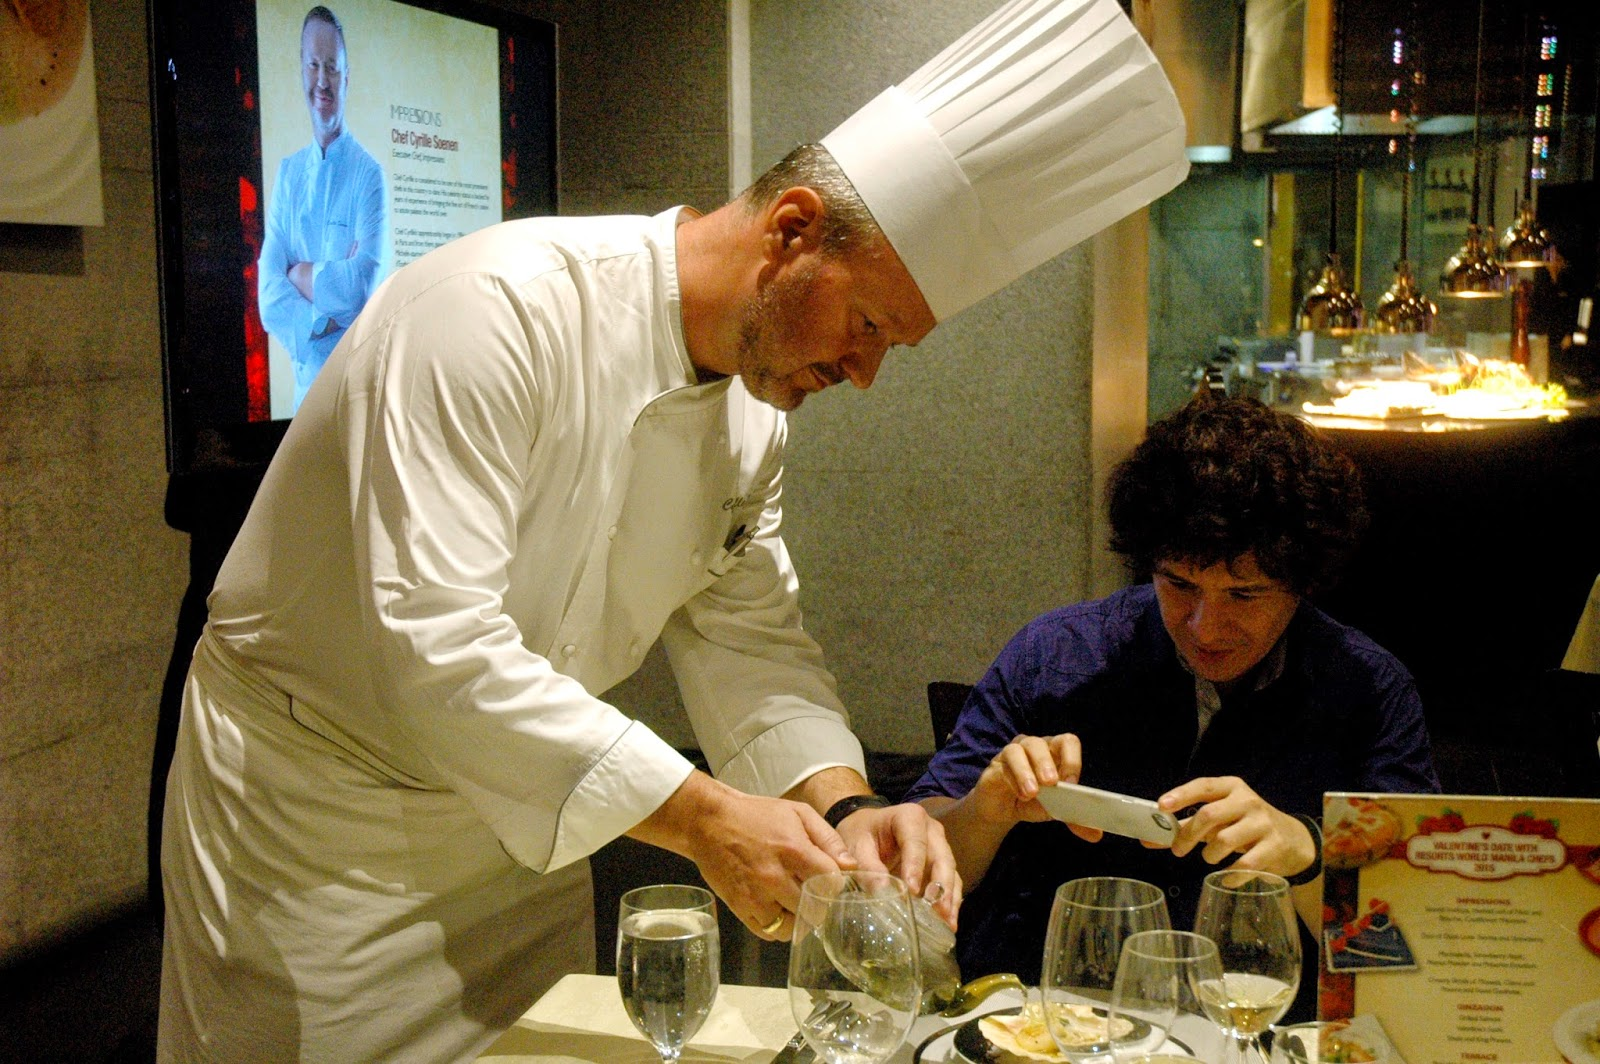 Dude for food food news chef cyrille soenen honored as master chef for the month of april chef cyrille soenen showcases his culinary mastery with a lavish four course seafood degustacion set menu for the season of lent fandeluxe Image collections